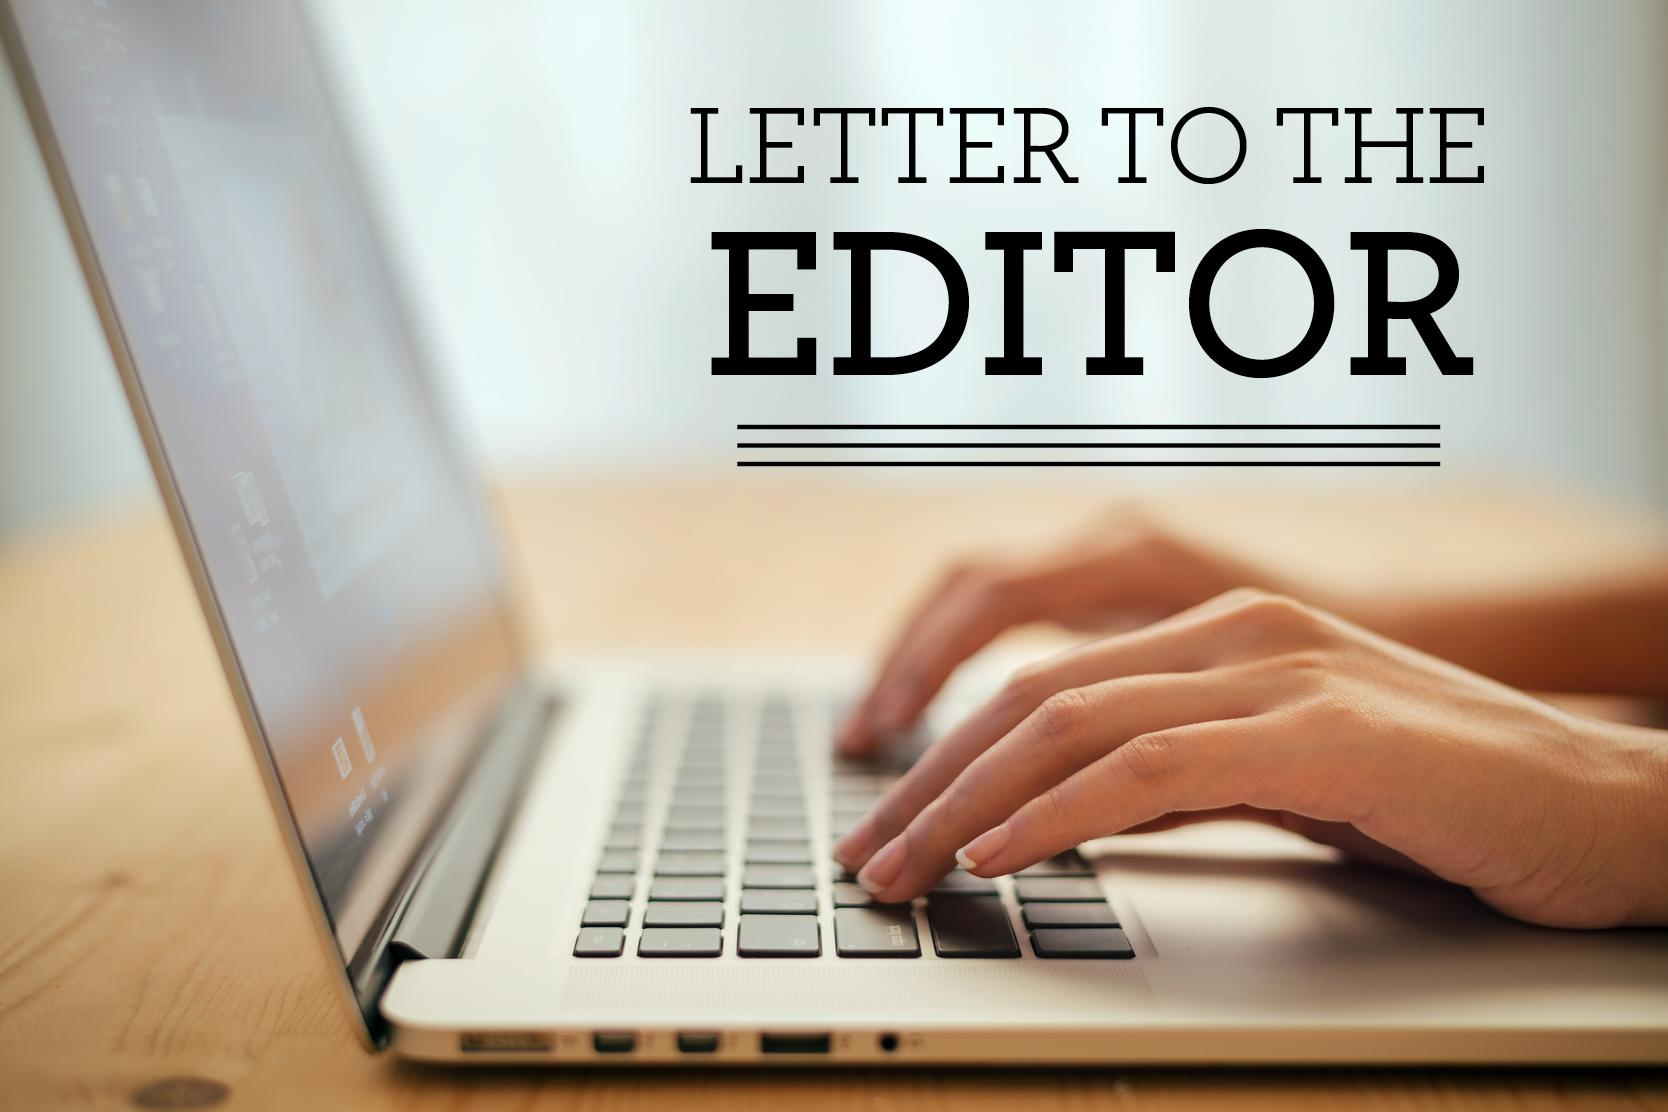 www.darientimes.com: Letter: When it comes to equality, silence is not an option